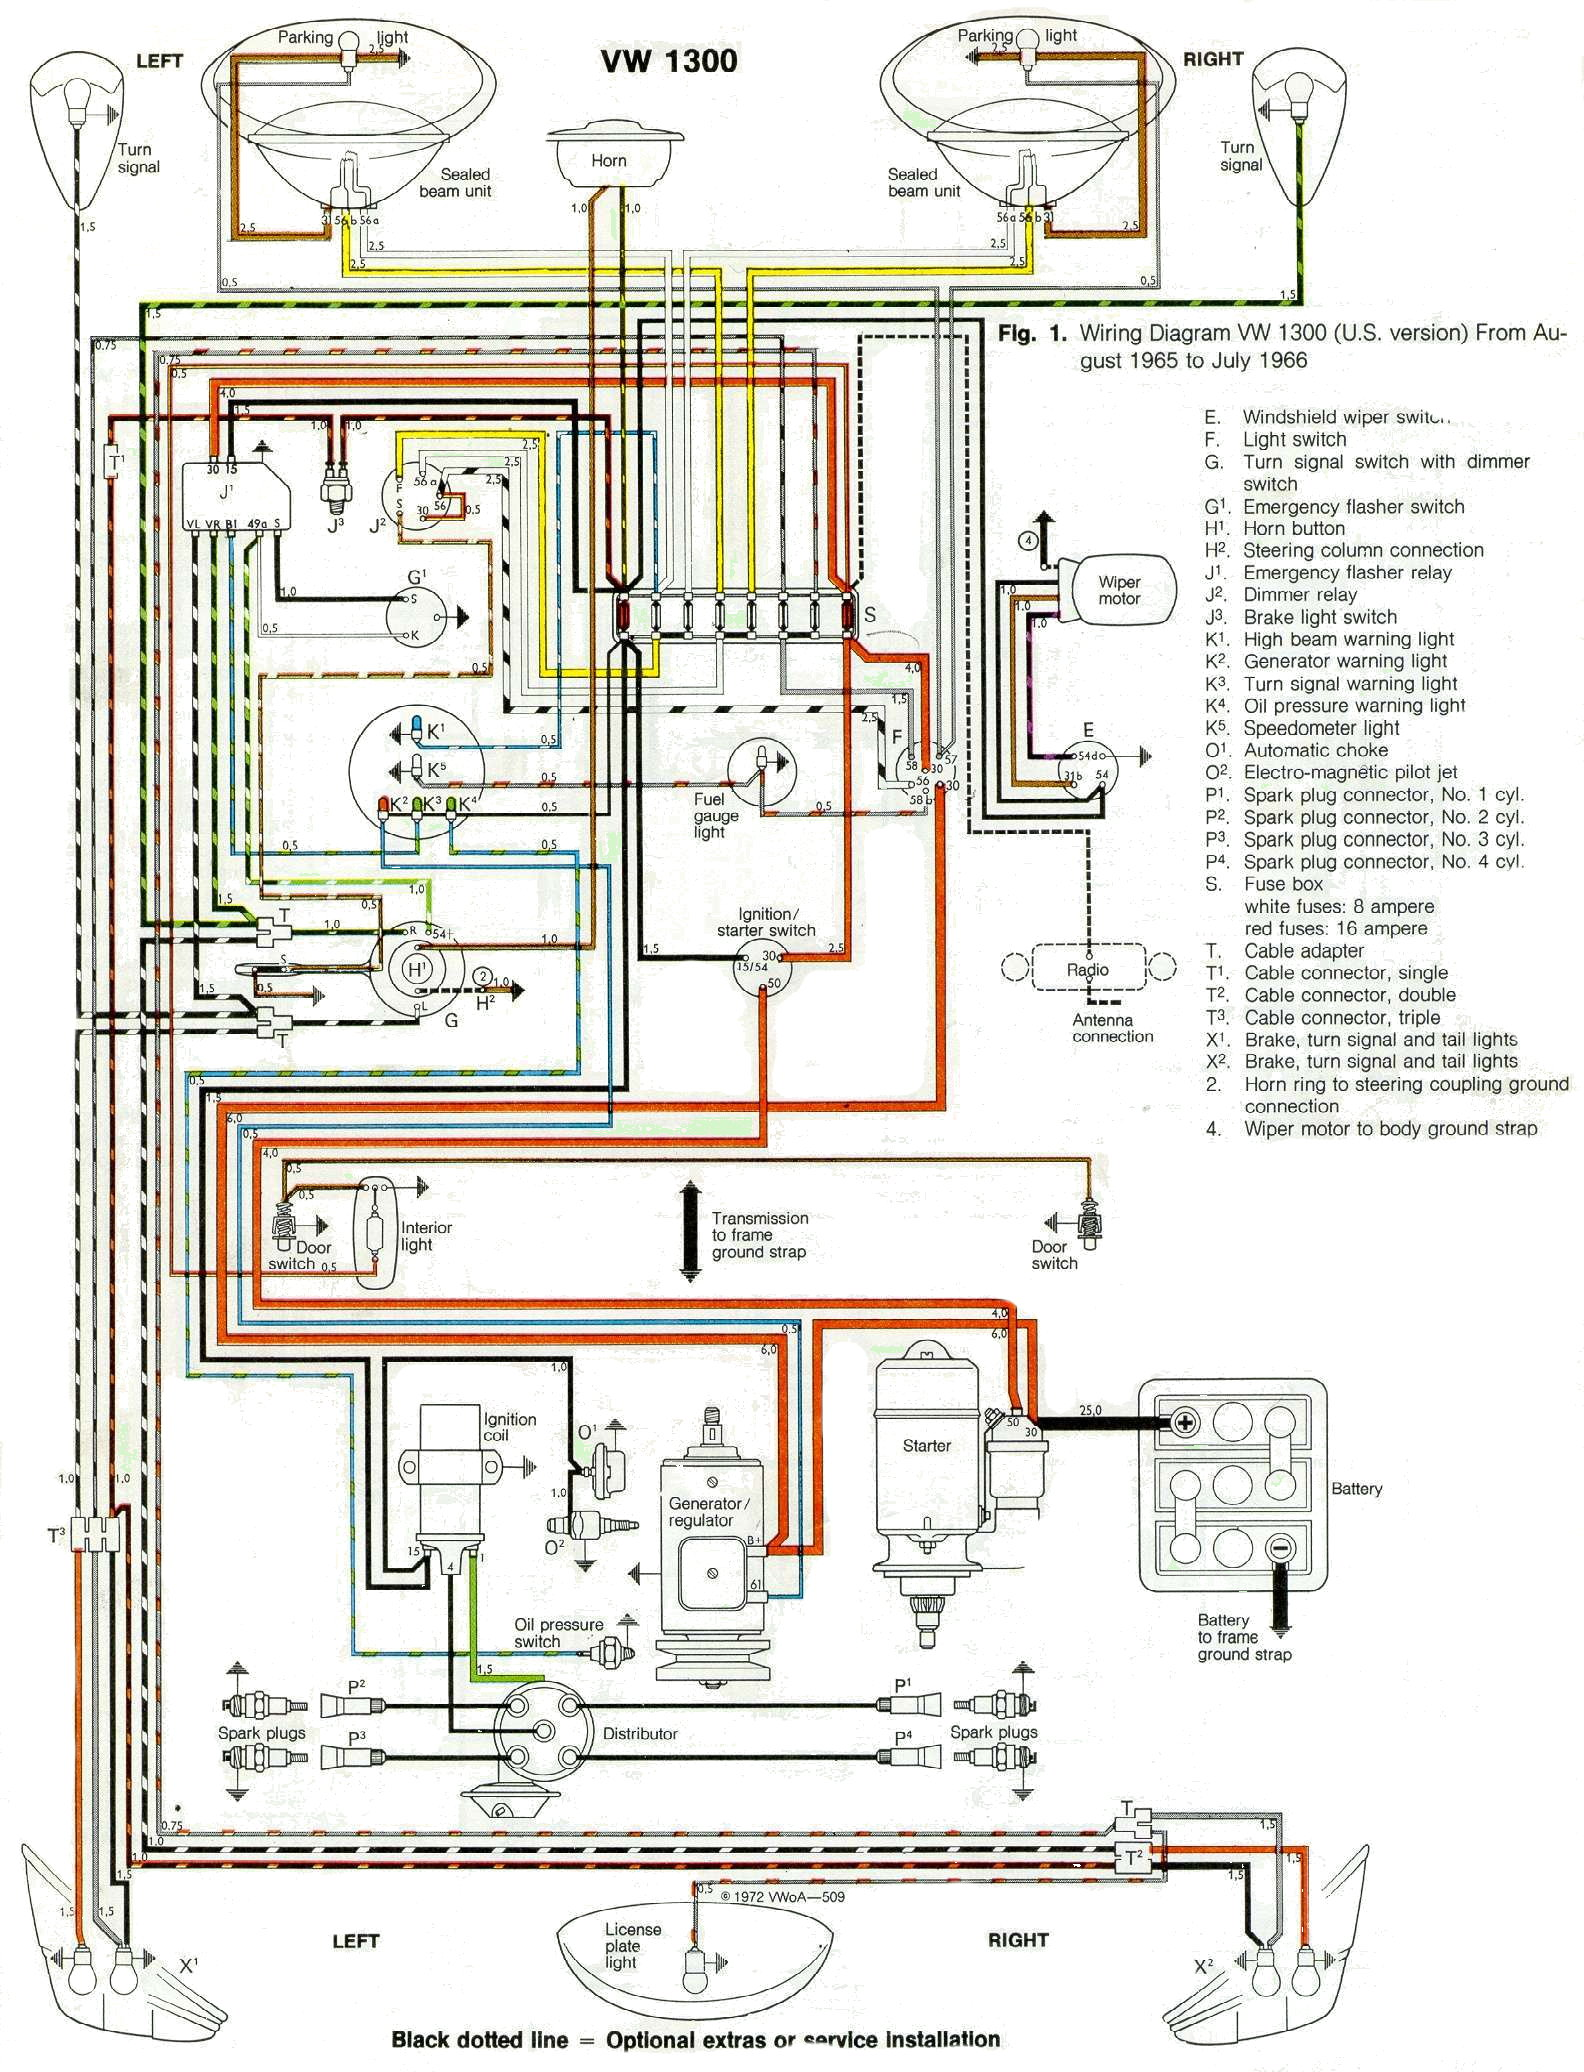 1966 Pontiac Bonneville Wiring Diagram Simple Guide About Honda Gl1100